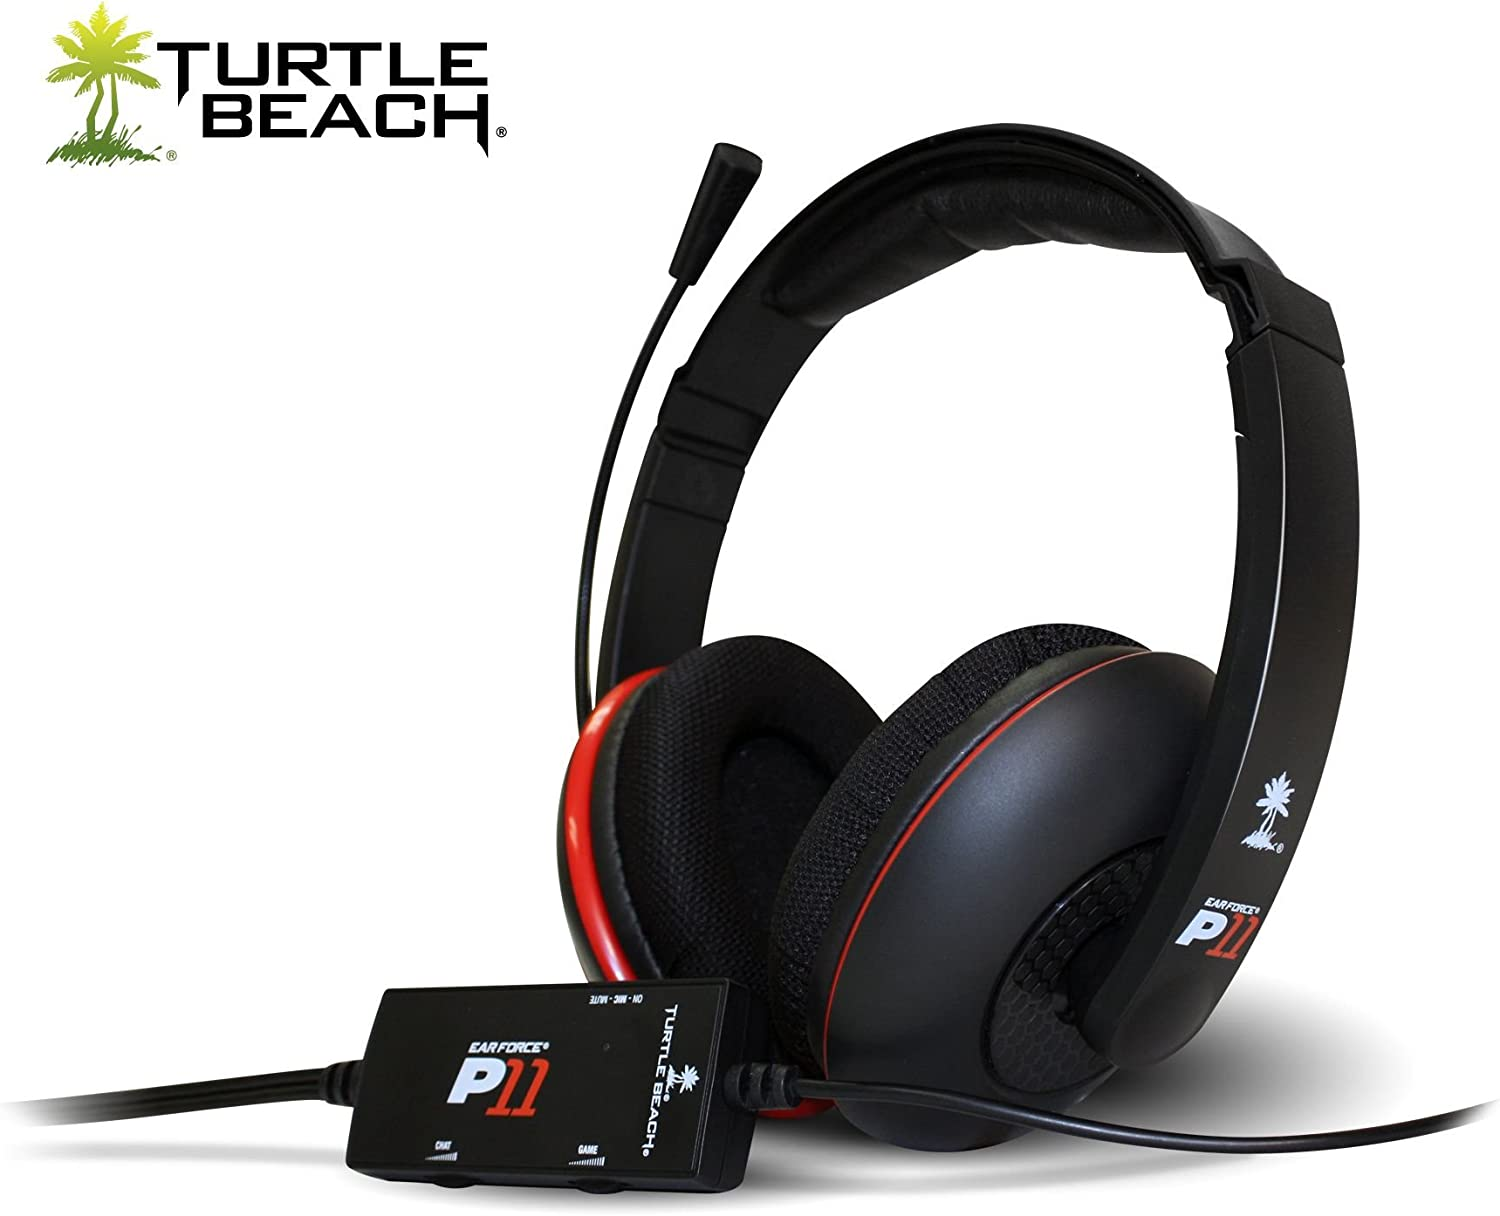 71lcrForN5L._AC_SL1500_ amazon com turtle beach ear force p11 amplified stereo gaming turtle beach p11 wiring diagram at soozxer.org